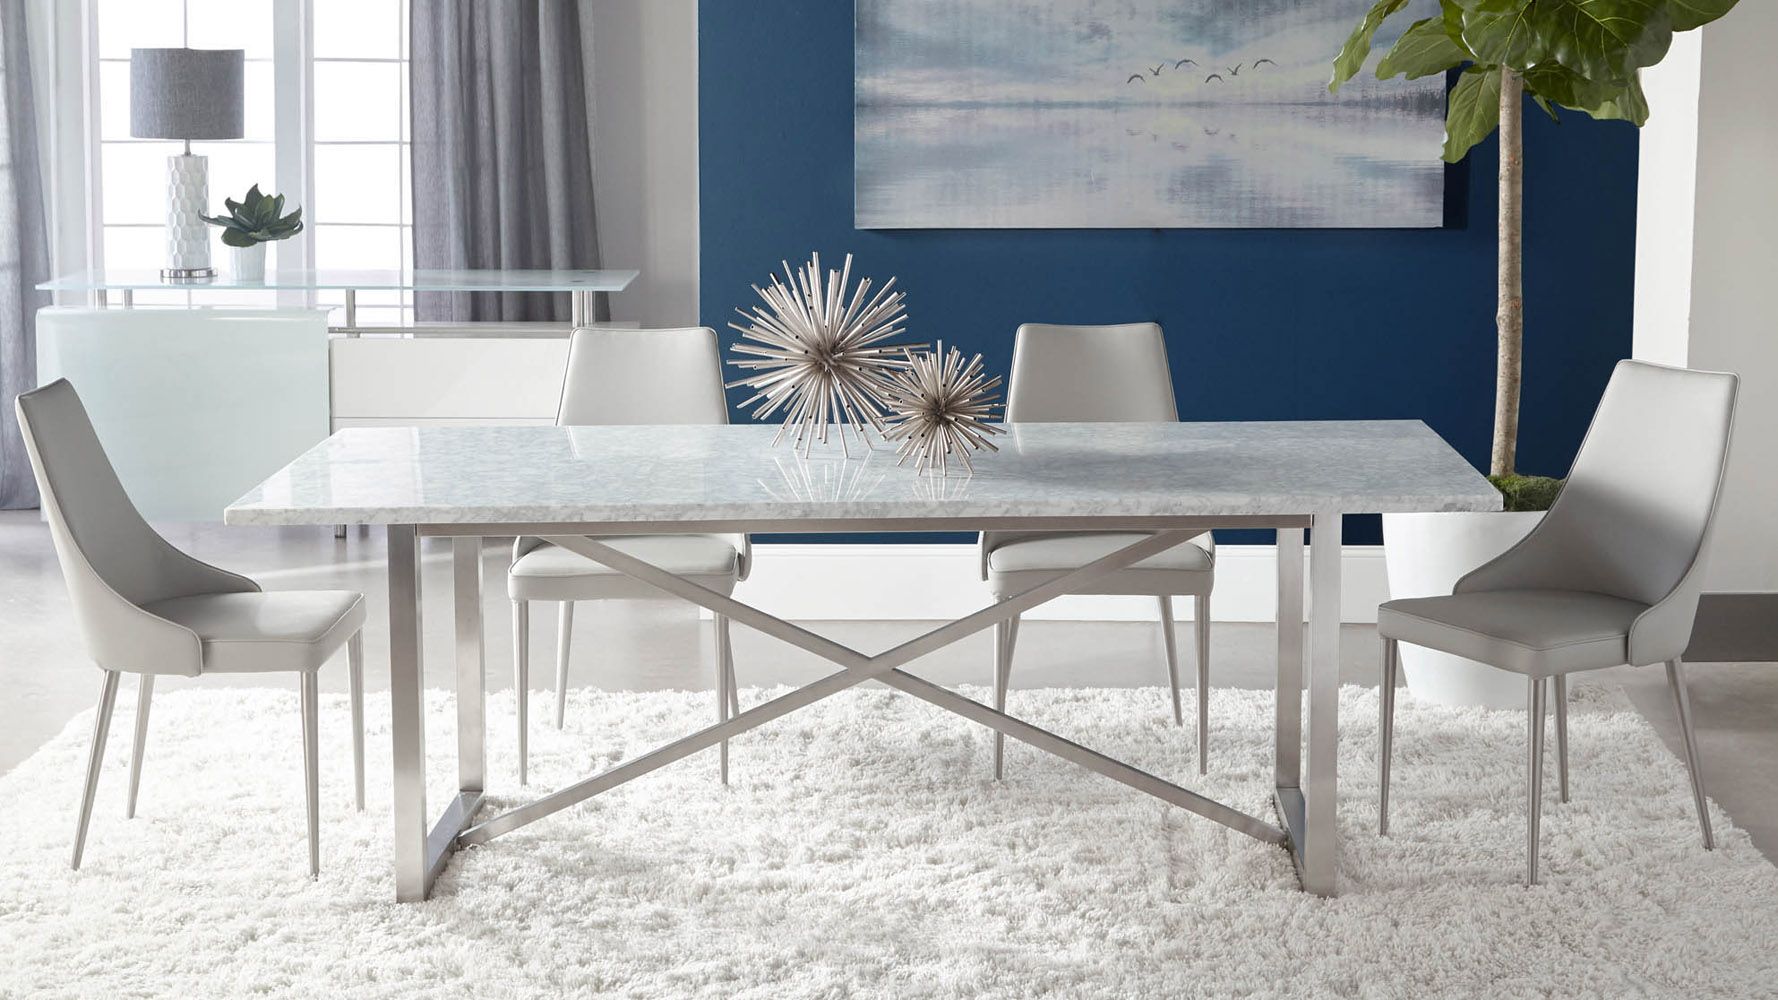 Avenza White Marble Dining Table with Steel Base White